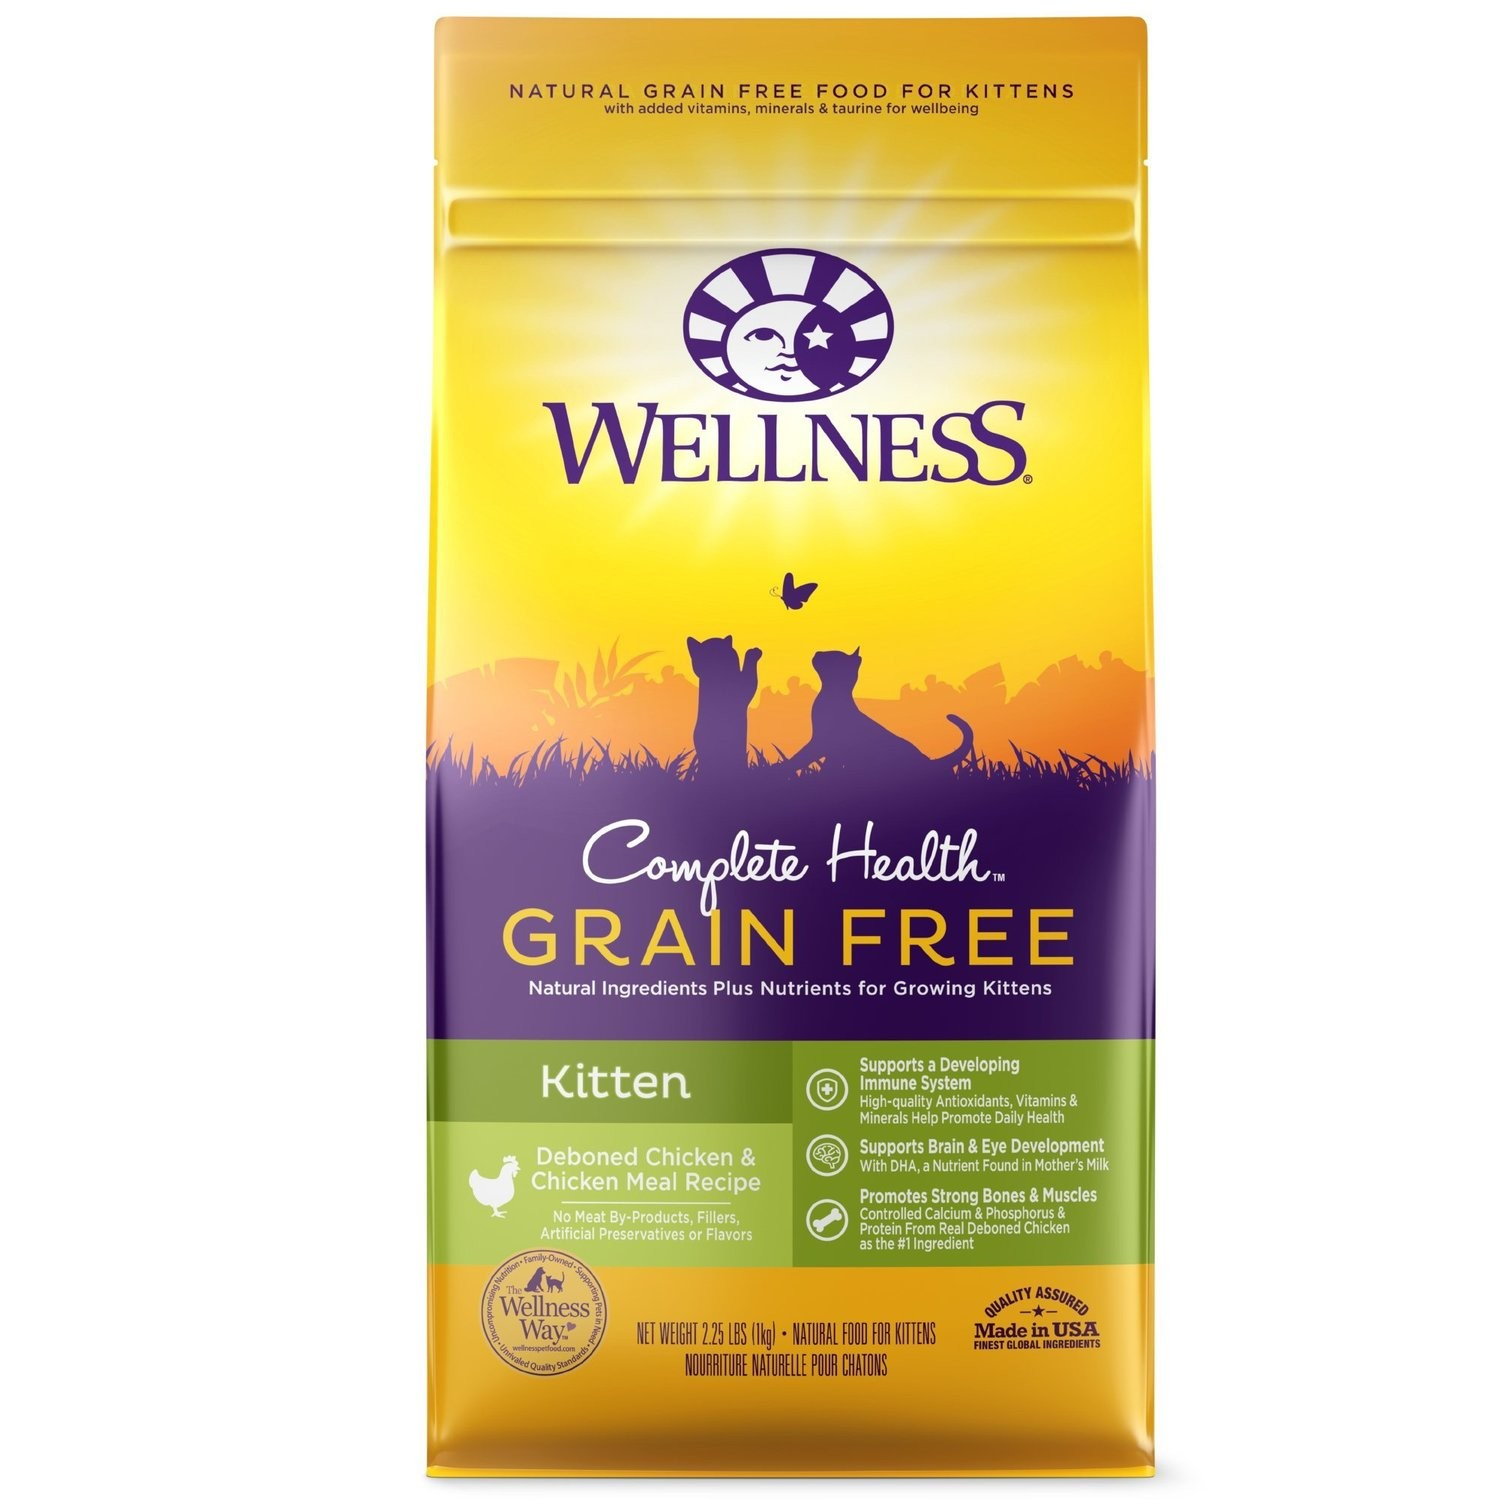 Wellness Complete Health Natural Grain Free Deboned Chicken & Chicken Meal Dry Cat Food 2.25 lbs (4/19) (A.R5)